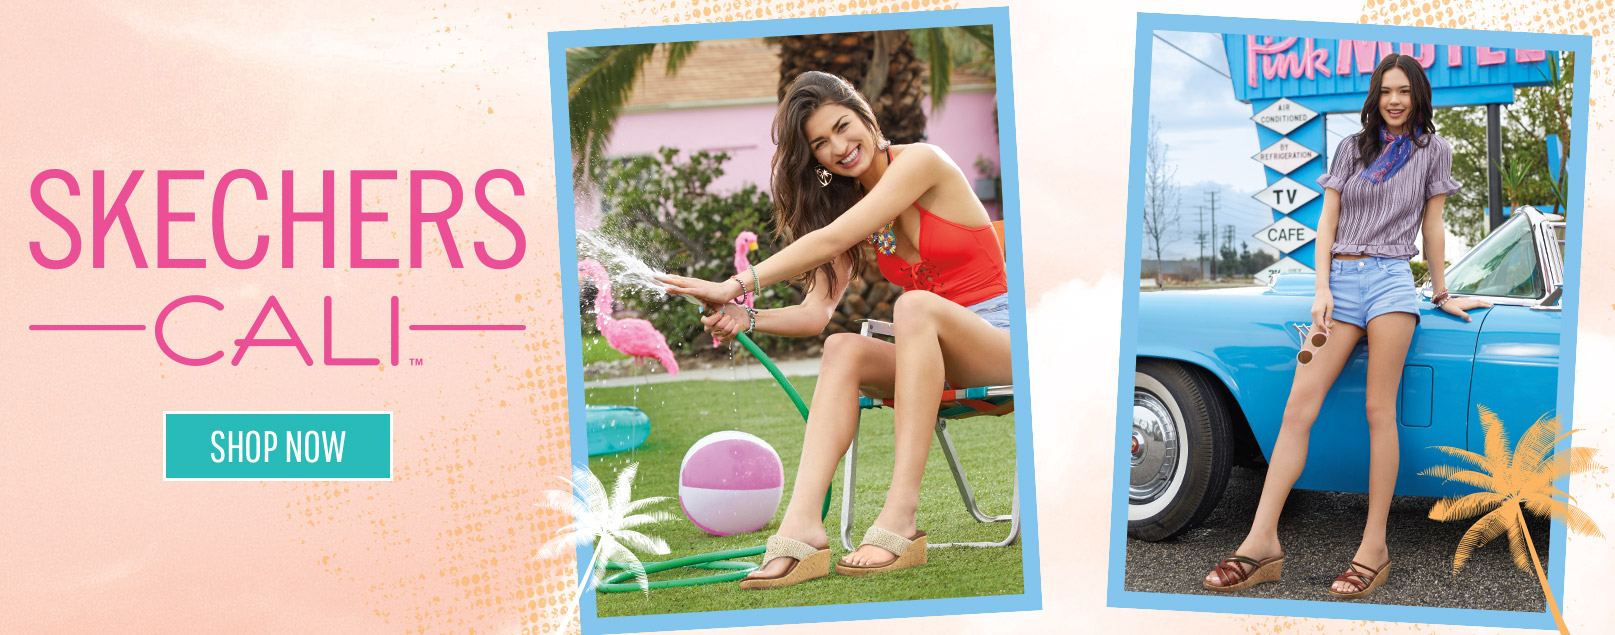 Skechers Cali has the perfect sandals for everywhere you'll go this season!